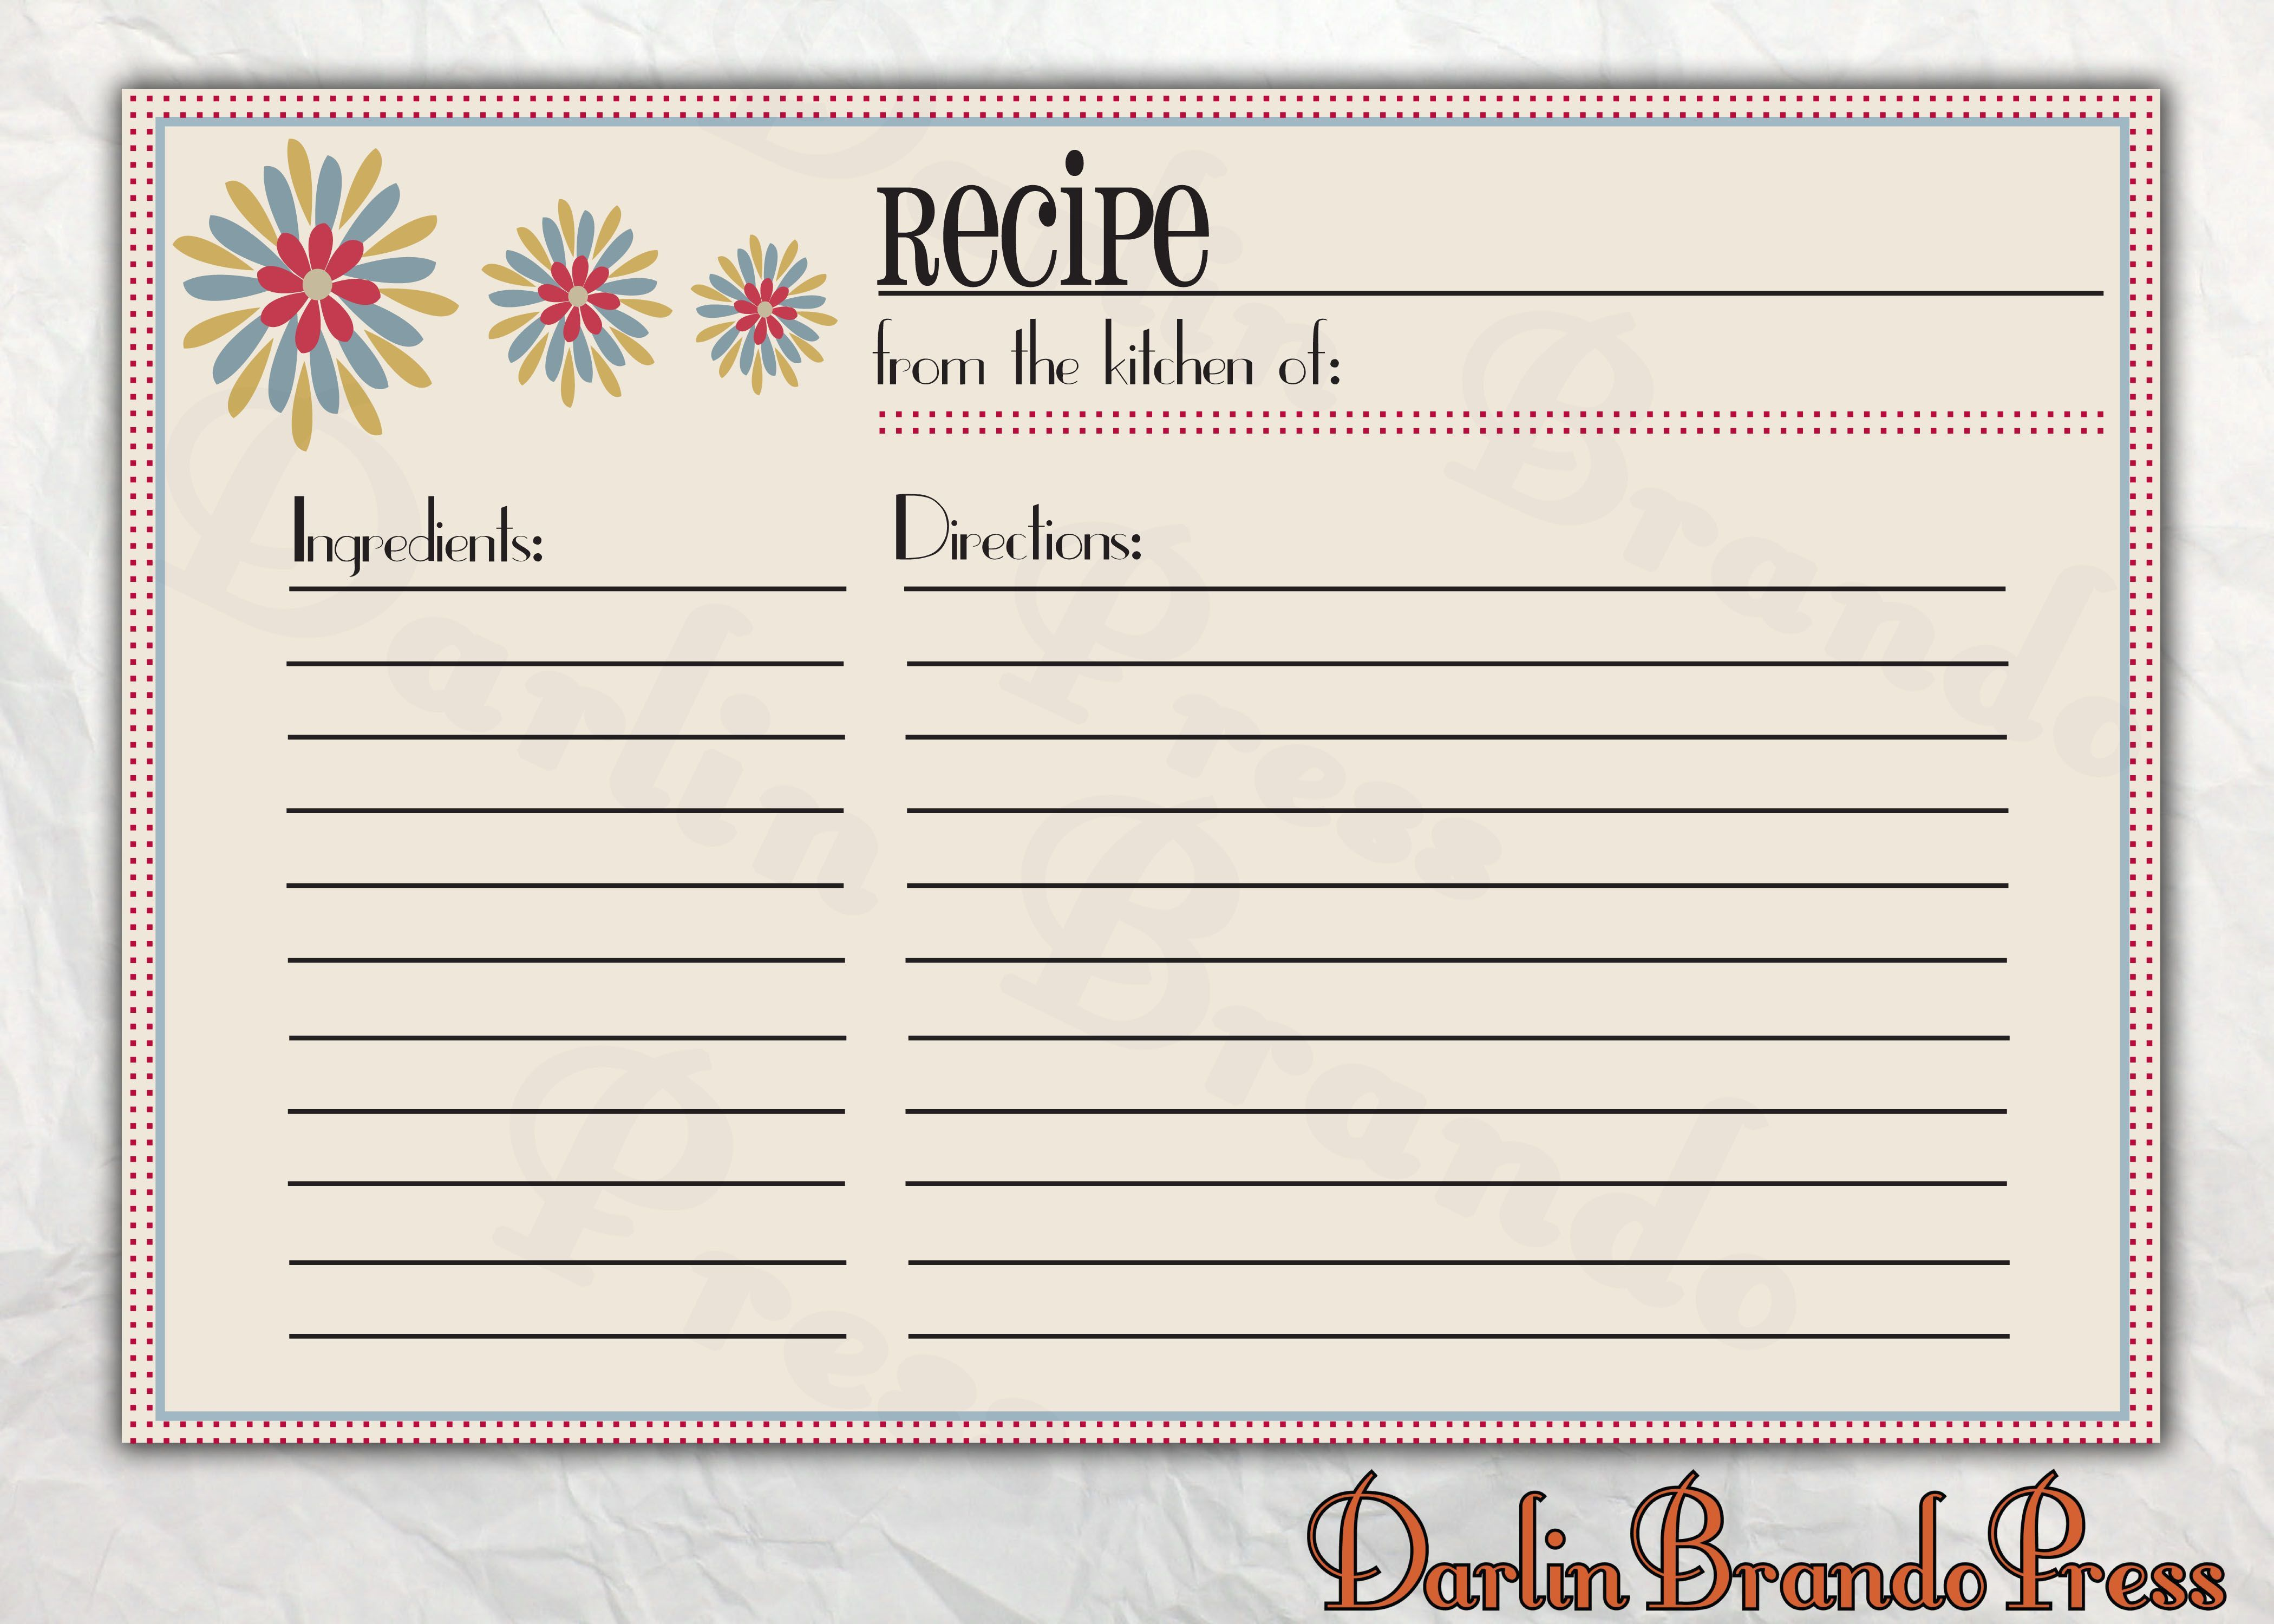 006 Astounding 4 X 6 Recipe Card Template Microsoft Word Inspiration Full